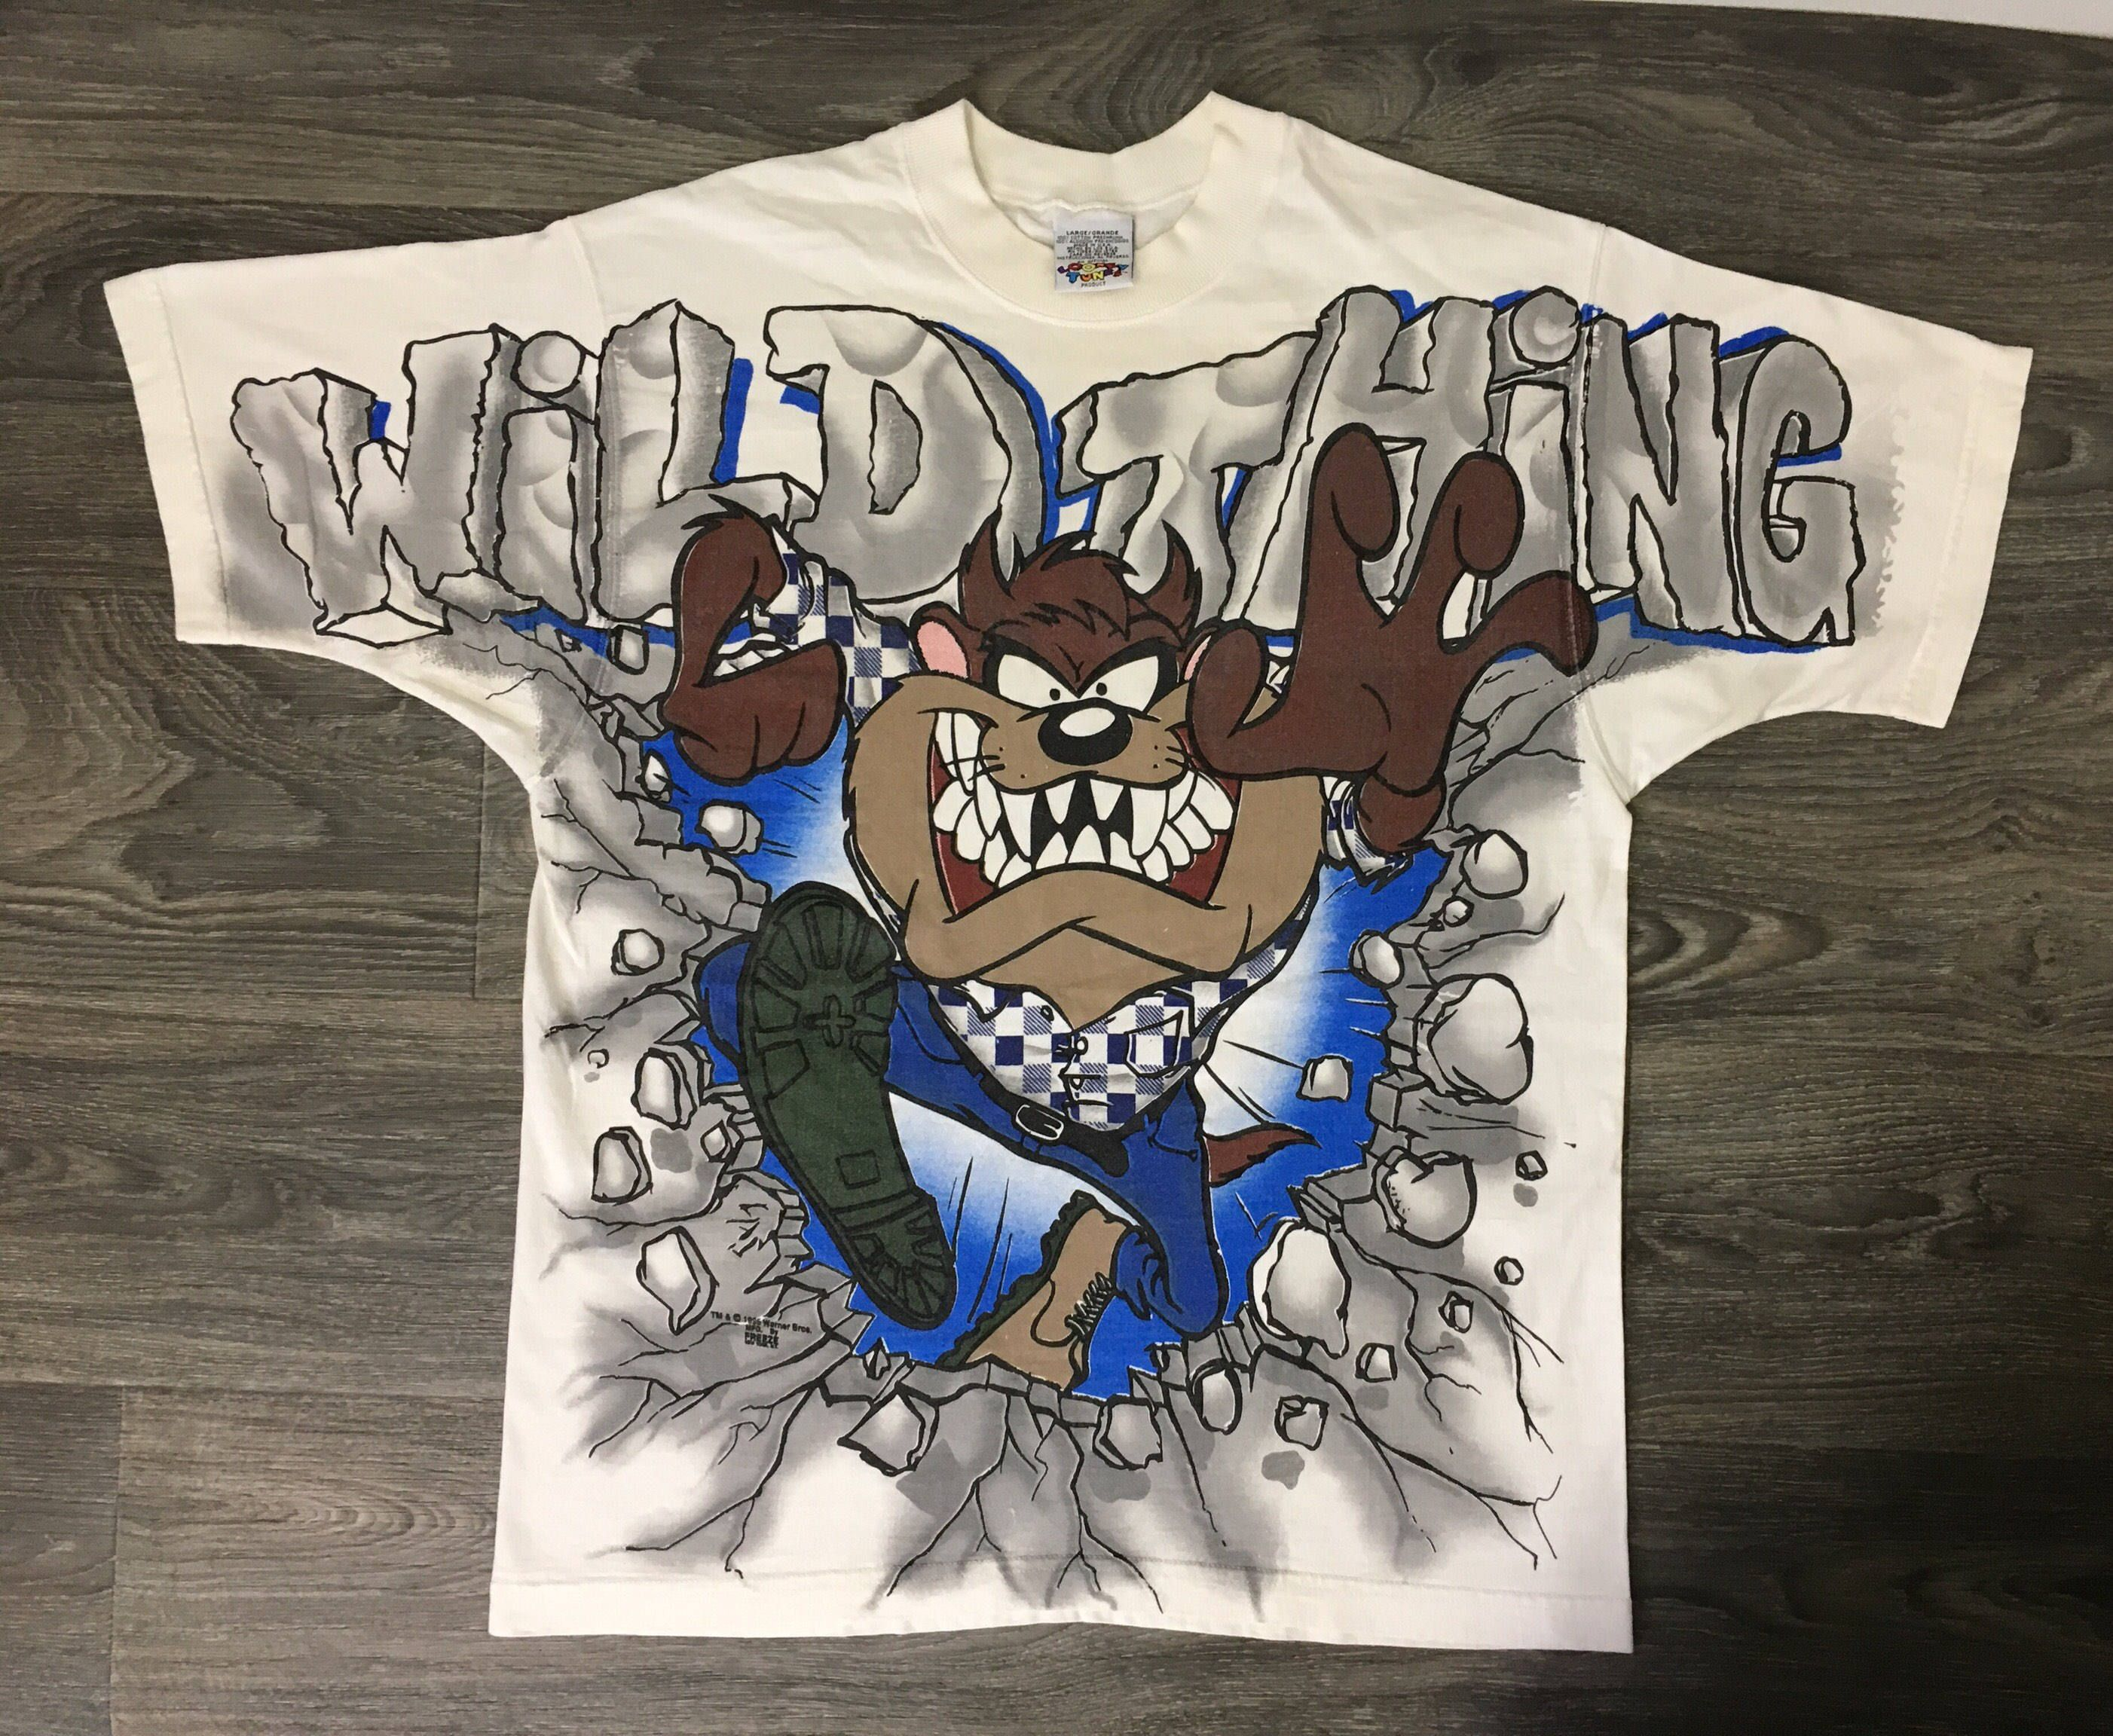 833245e15758 Looney Tunes Shirt 1995 90s Vintage Taz All Over Tasmanian Devil Cartoon  Tshirt Wild Thing Bugs Bunny Official Warner Brothers Tee Large by  sweetVTGtshirt ...